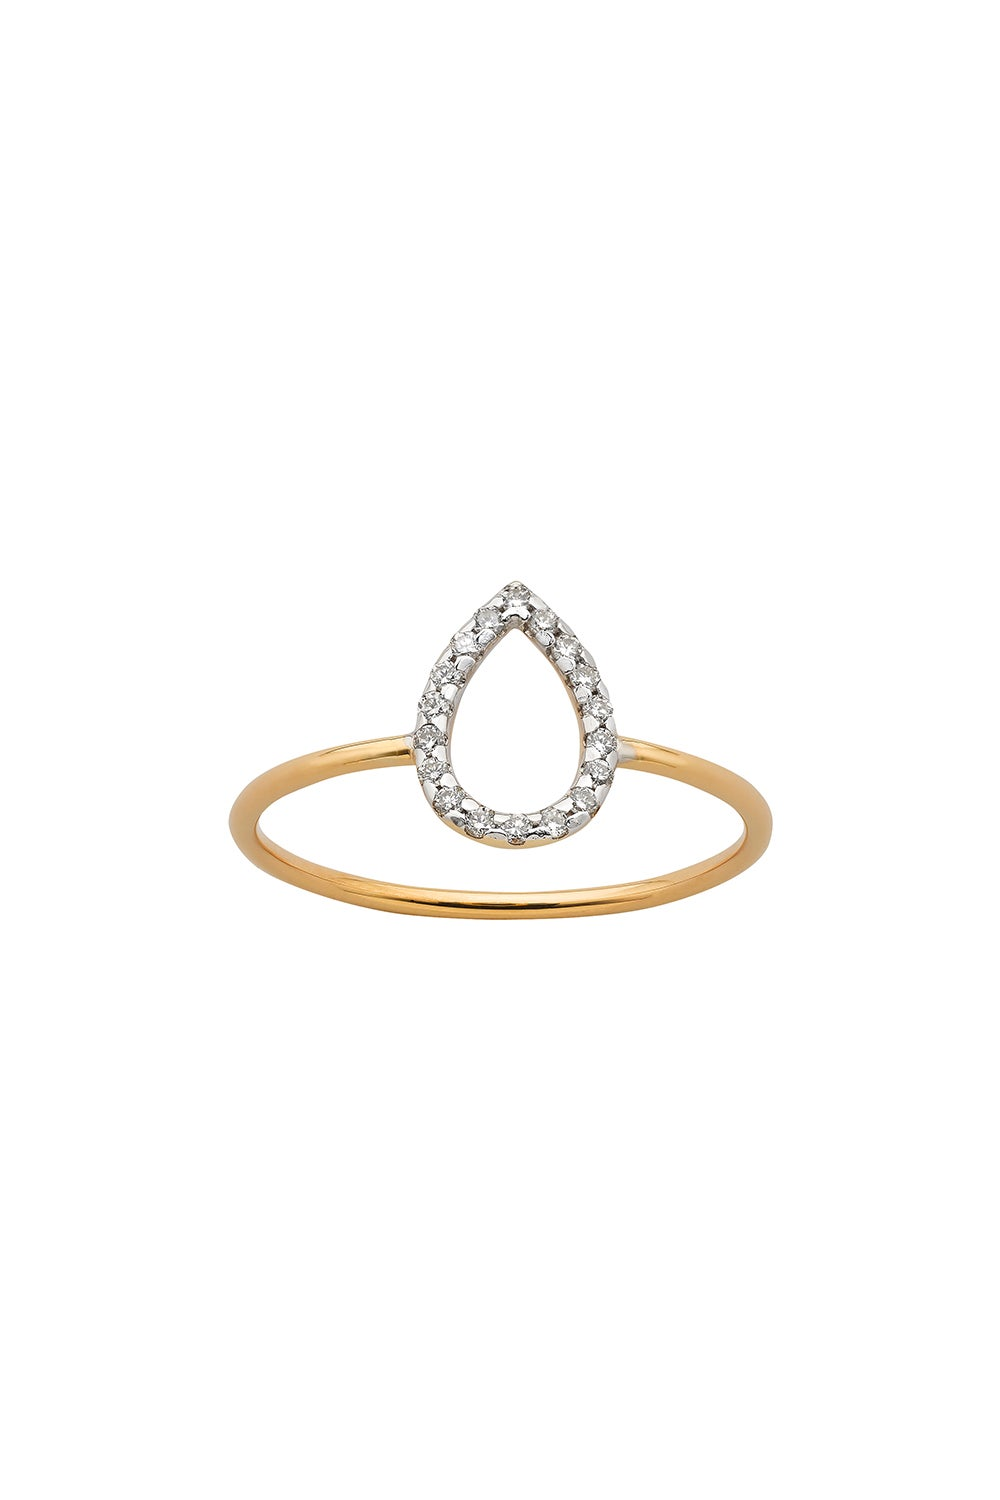 Capsule Diamond Ring, 9ct Gold, .12ct Diamond